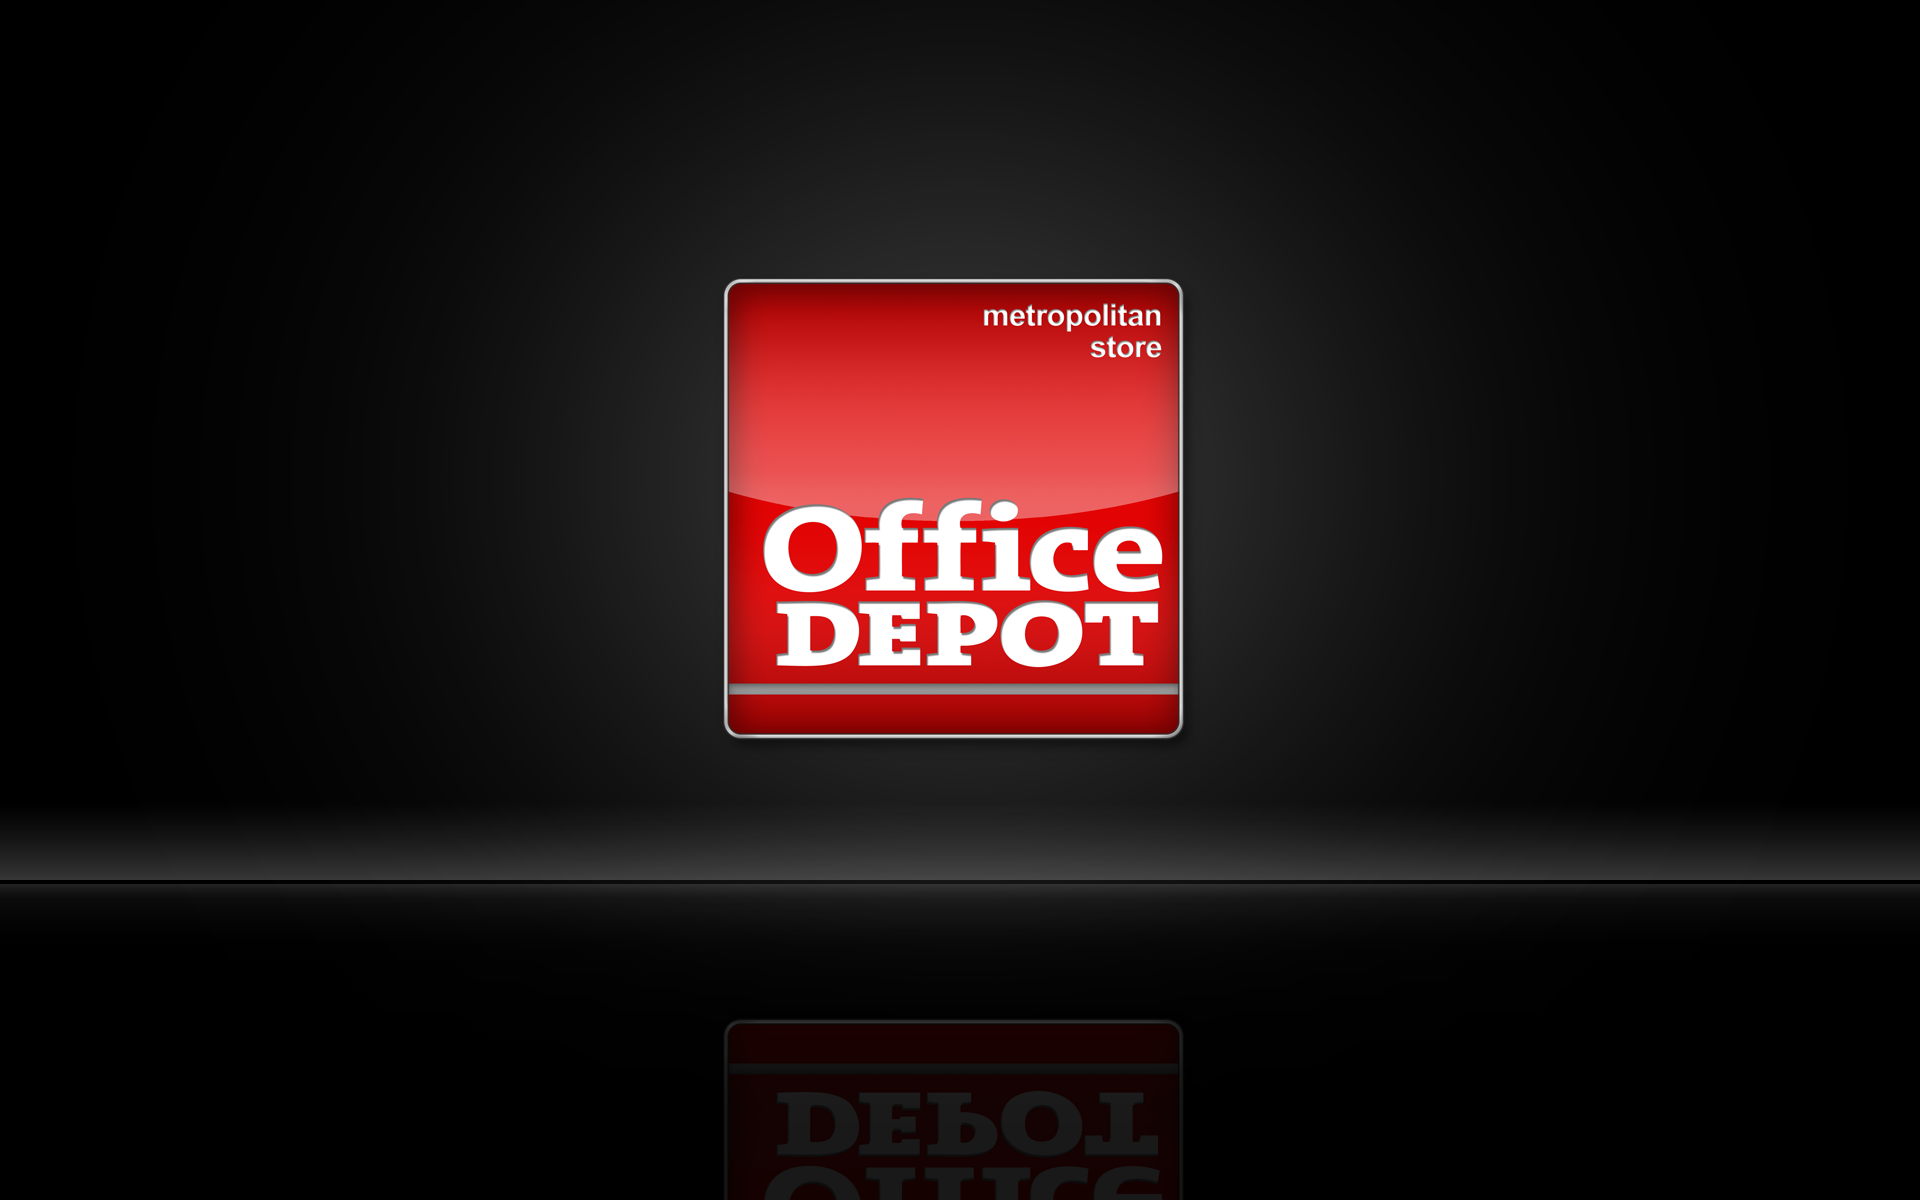 New Office Depot Cloisonne Style Icon by Graham Hnedak